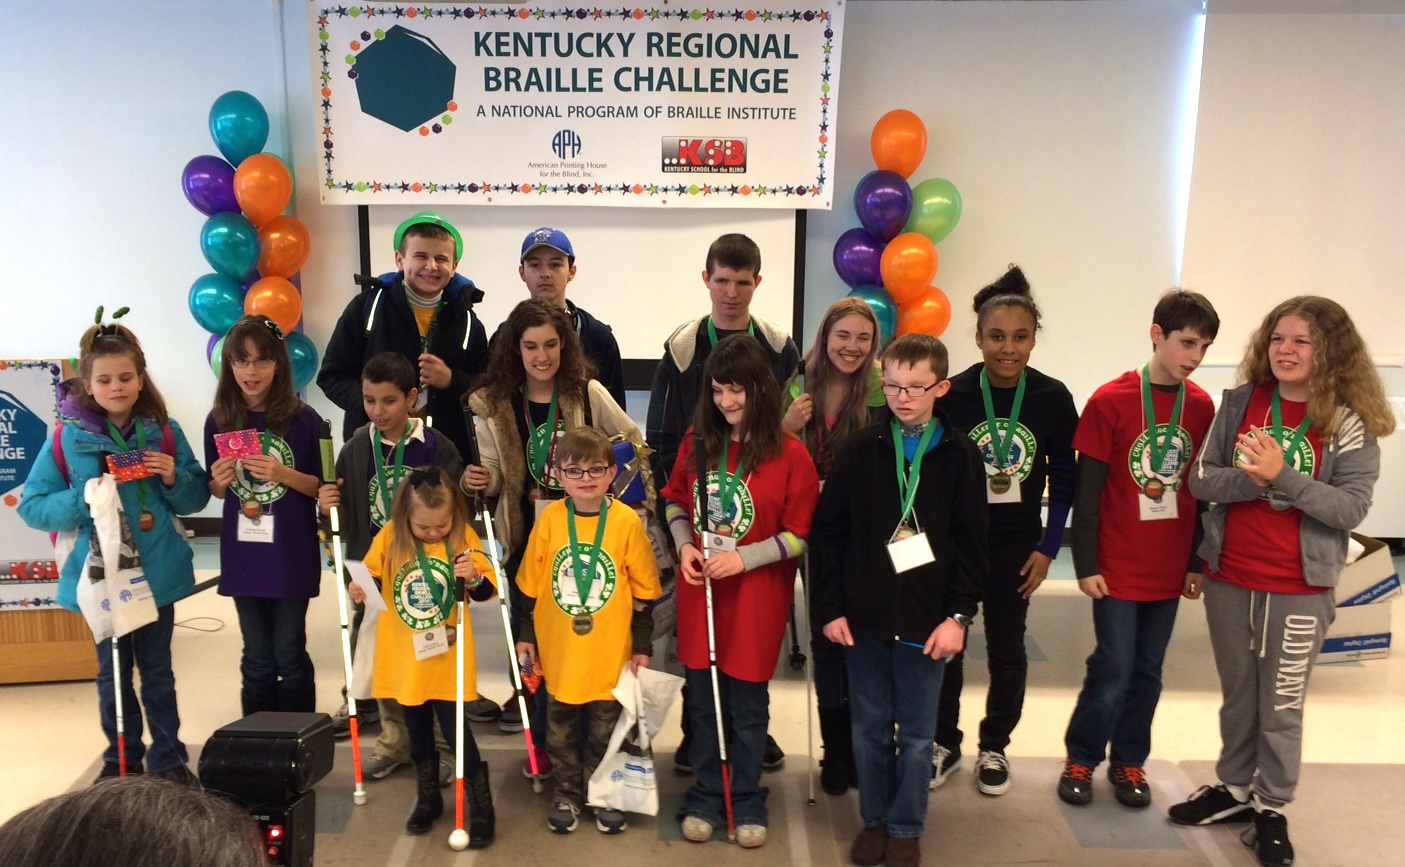 Student 1st, 2nd. and 3rd. place winners of the Kentucky Regional Braille Challenge pose in front of signage and balloons at the American Printing House during the Awards Assembly.